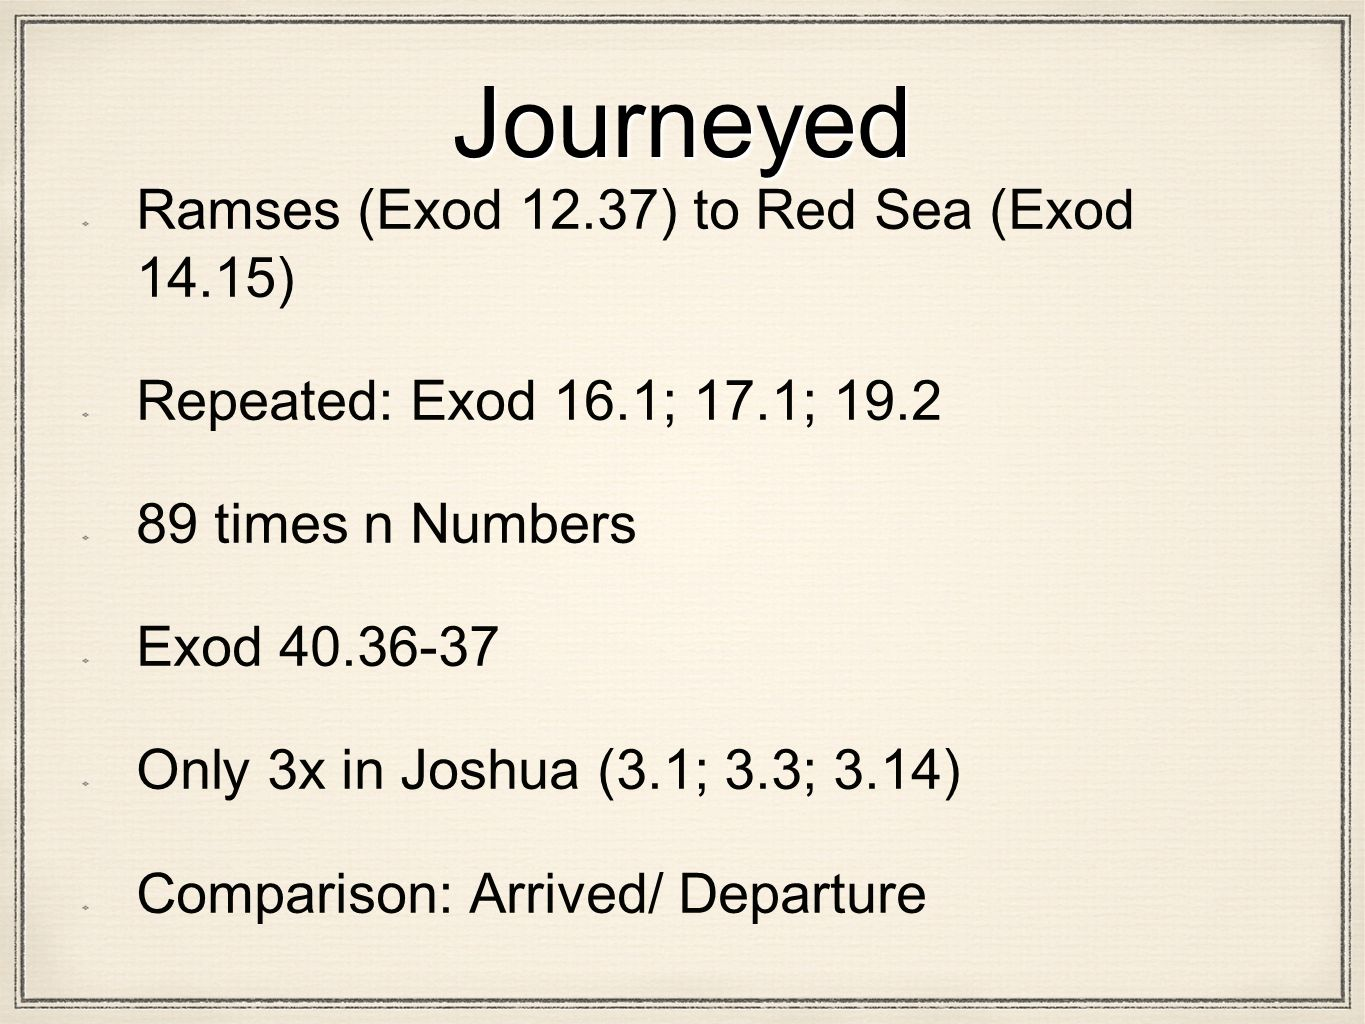 Journeyed Ramses (Exod 12.37) to Red Sea (Exod 14.15) Repeated: Exod 16.1; 17.1; 19.2 89 times n Numbers Exod 40.36-37 Only 3x in Joshua (3.1; 3.3; 3.14) Comparison: Arrived/ Departure